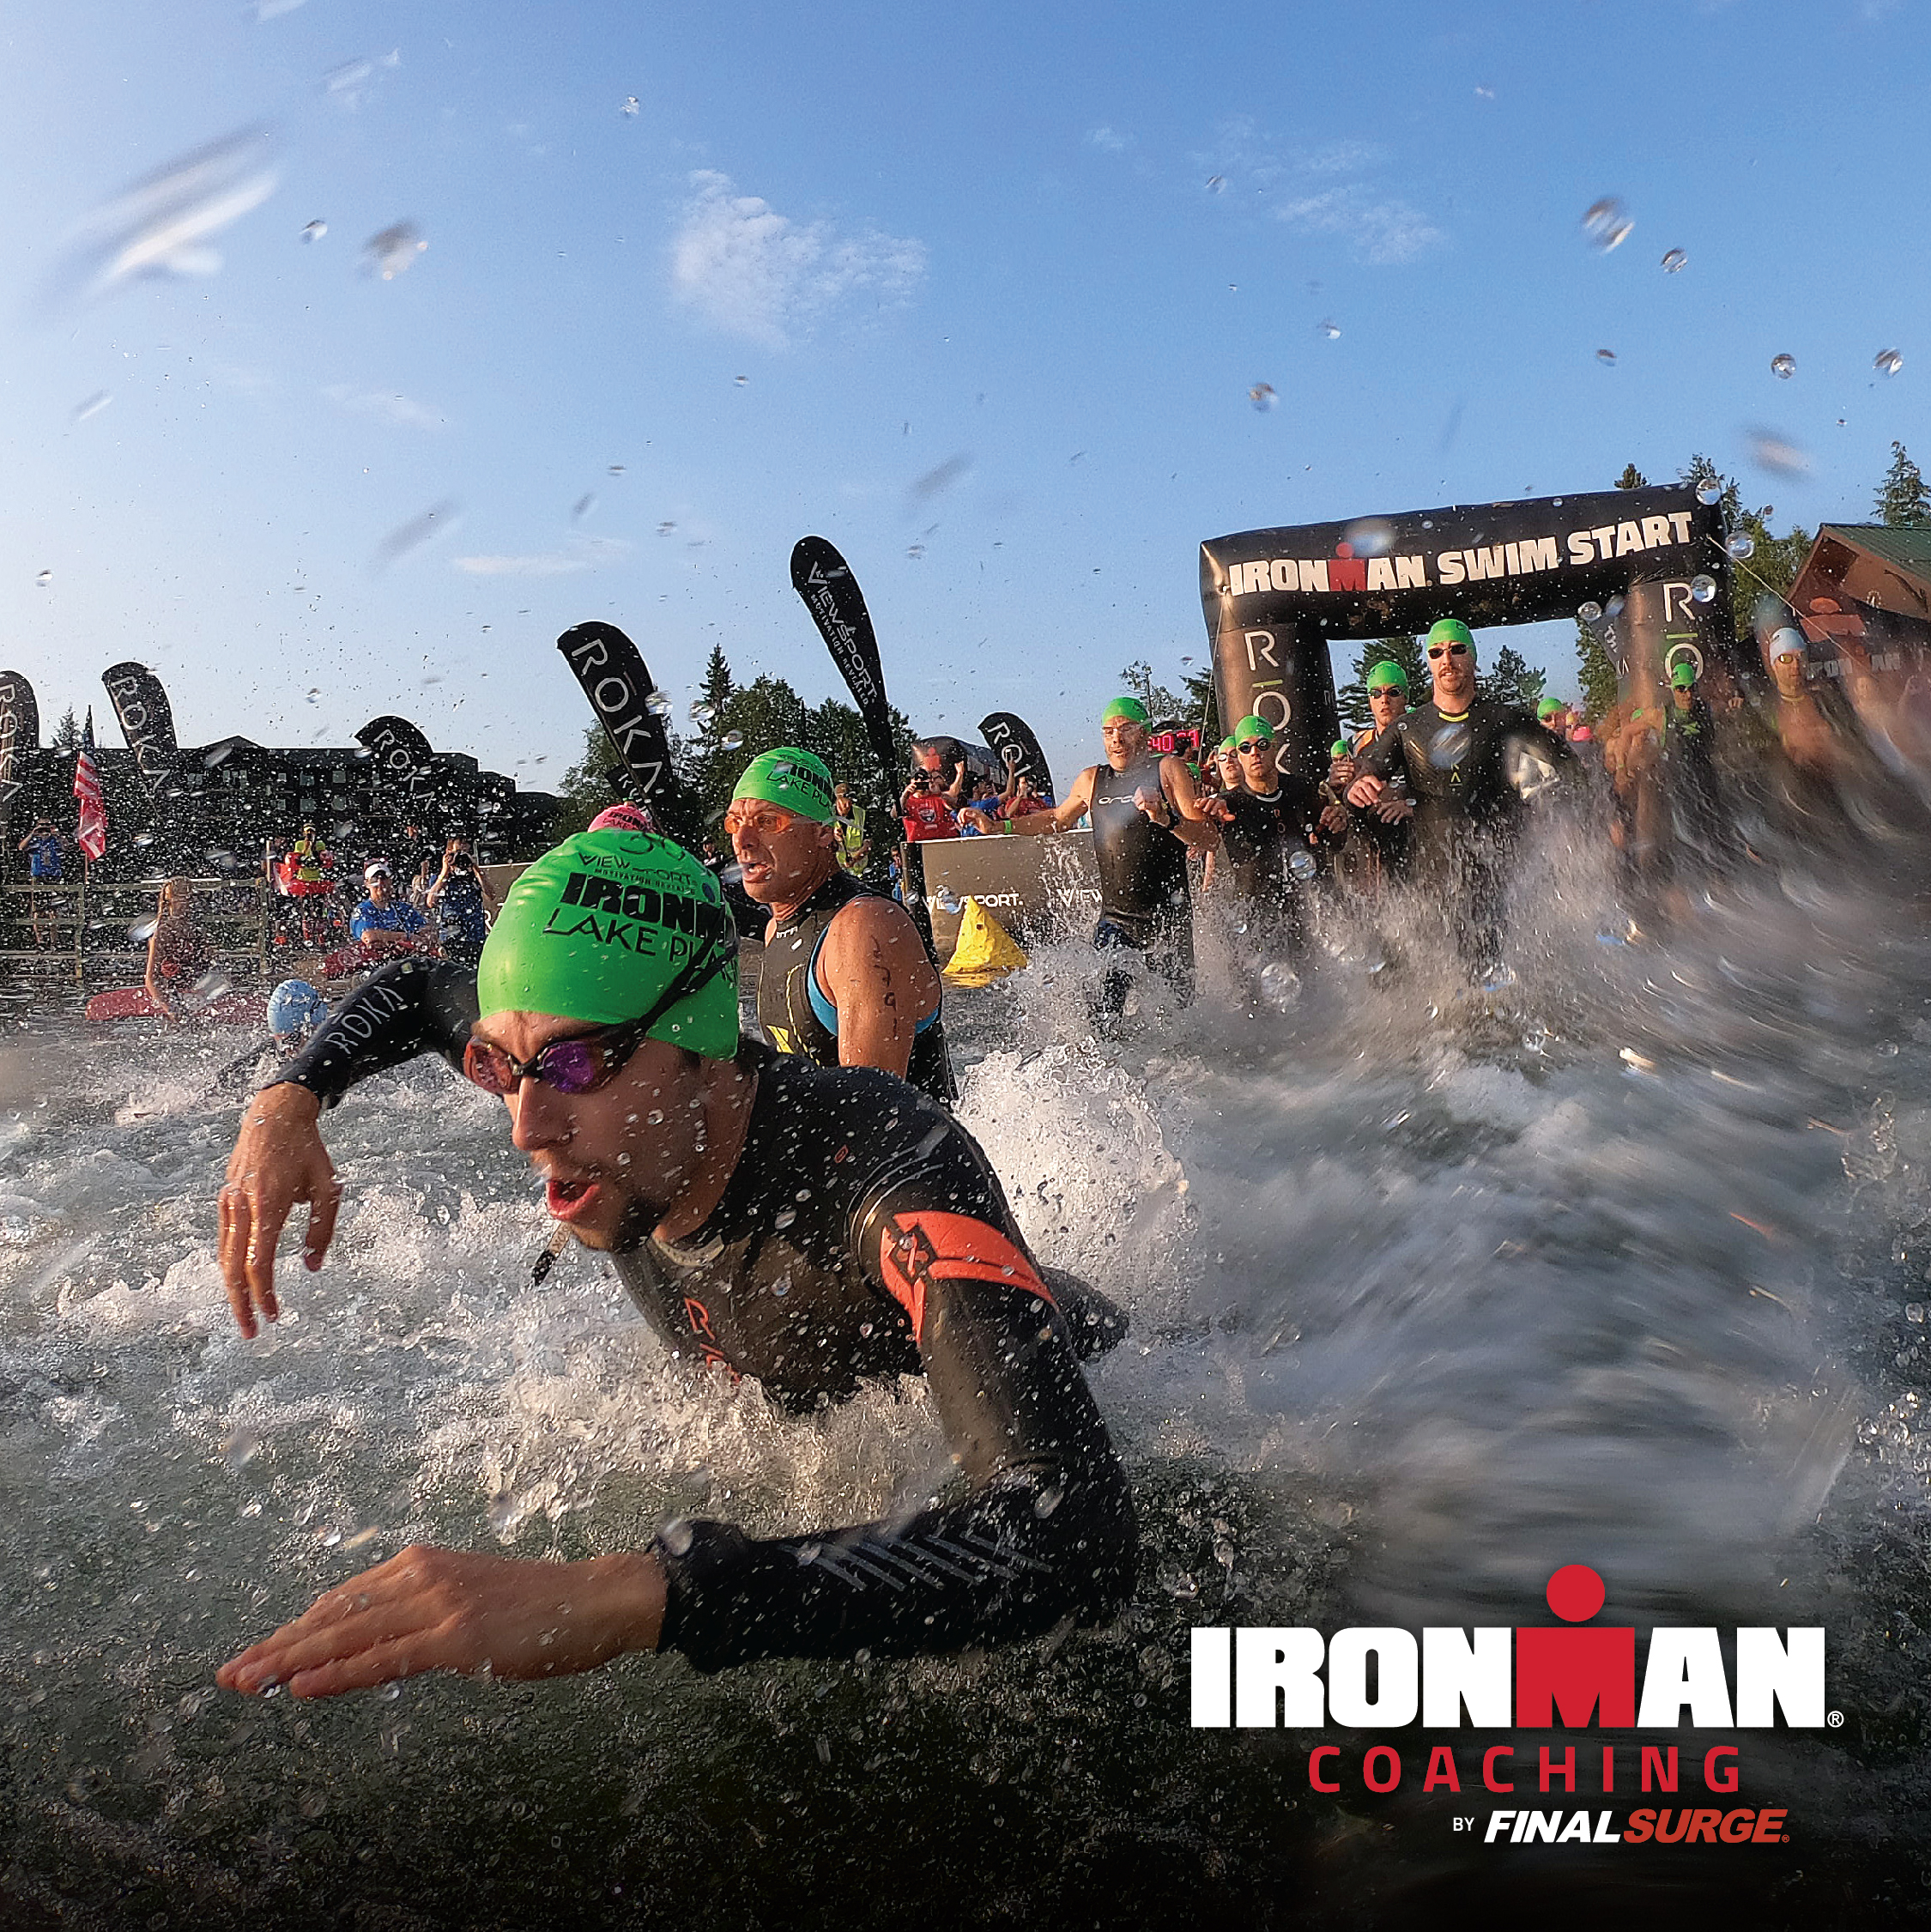 IRONMAN Coaching presented by Final Surge